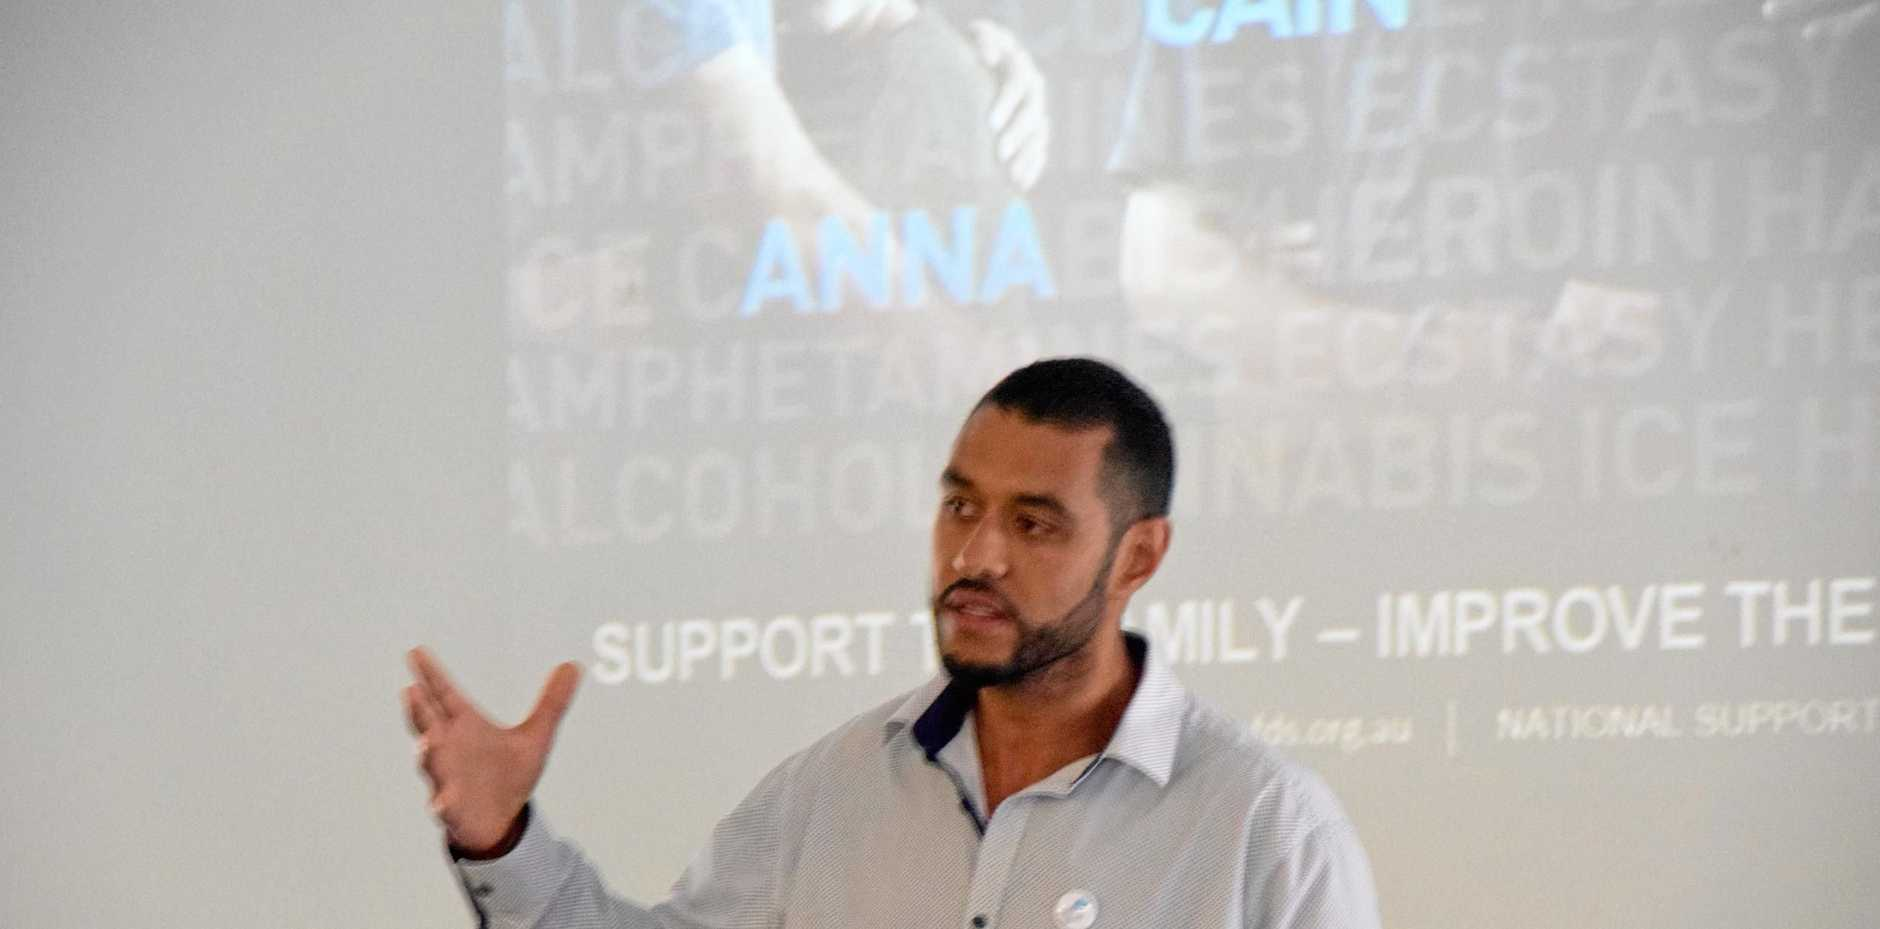 Mustafa Elkhishin from PHN was among the speakers at the Family Drug Support event